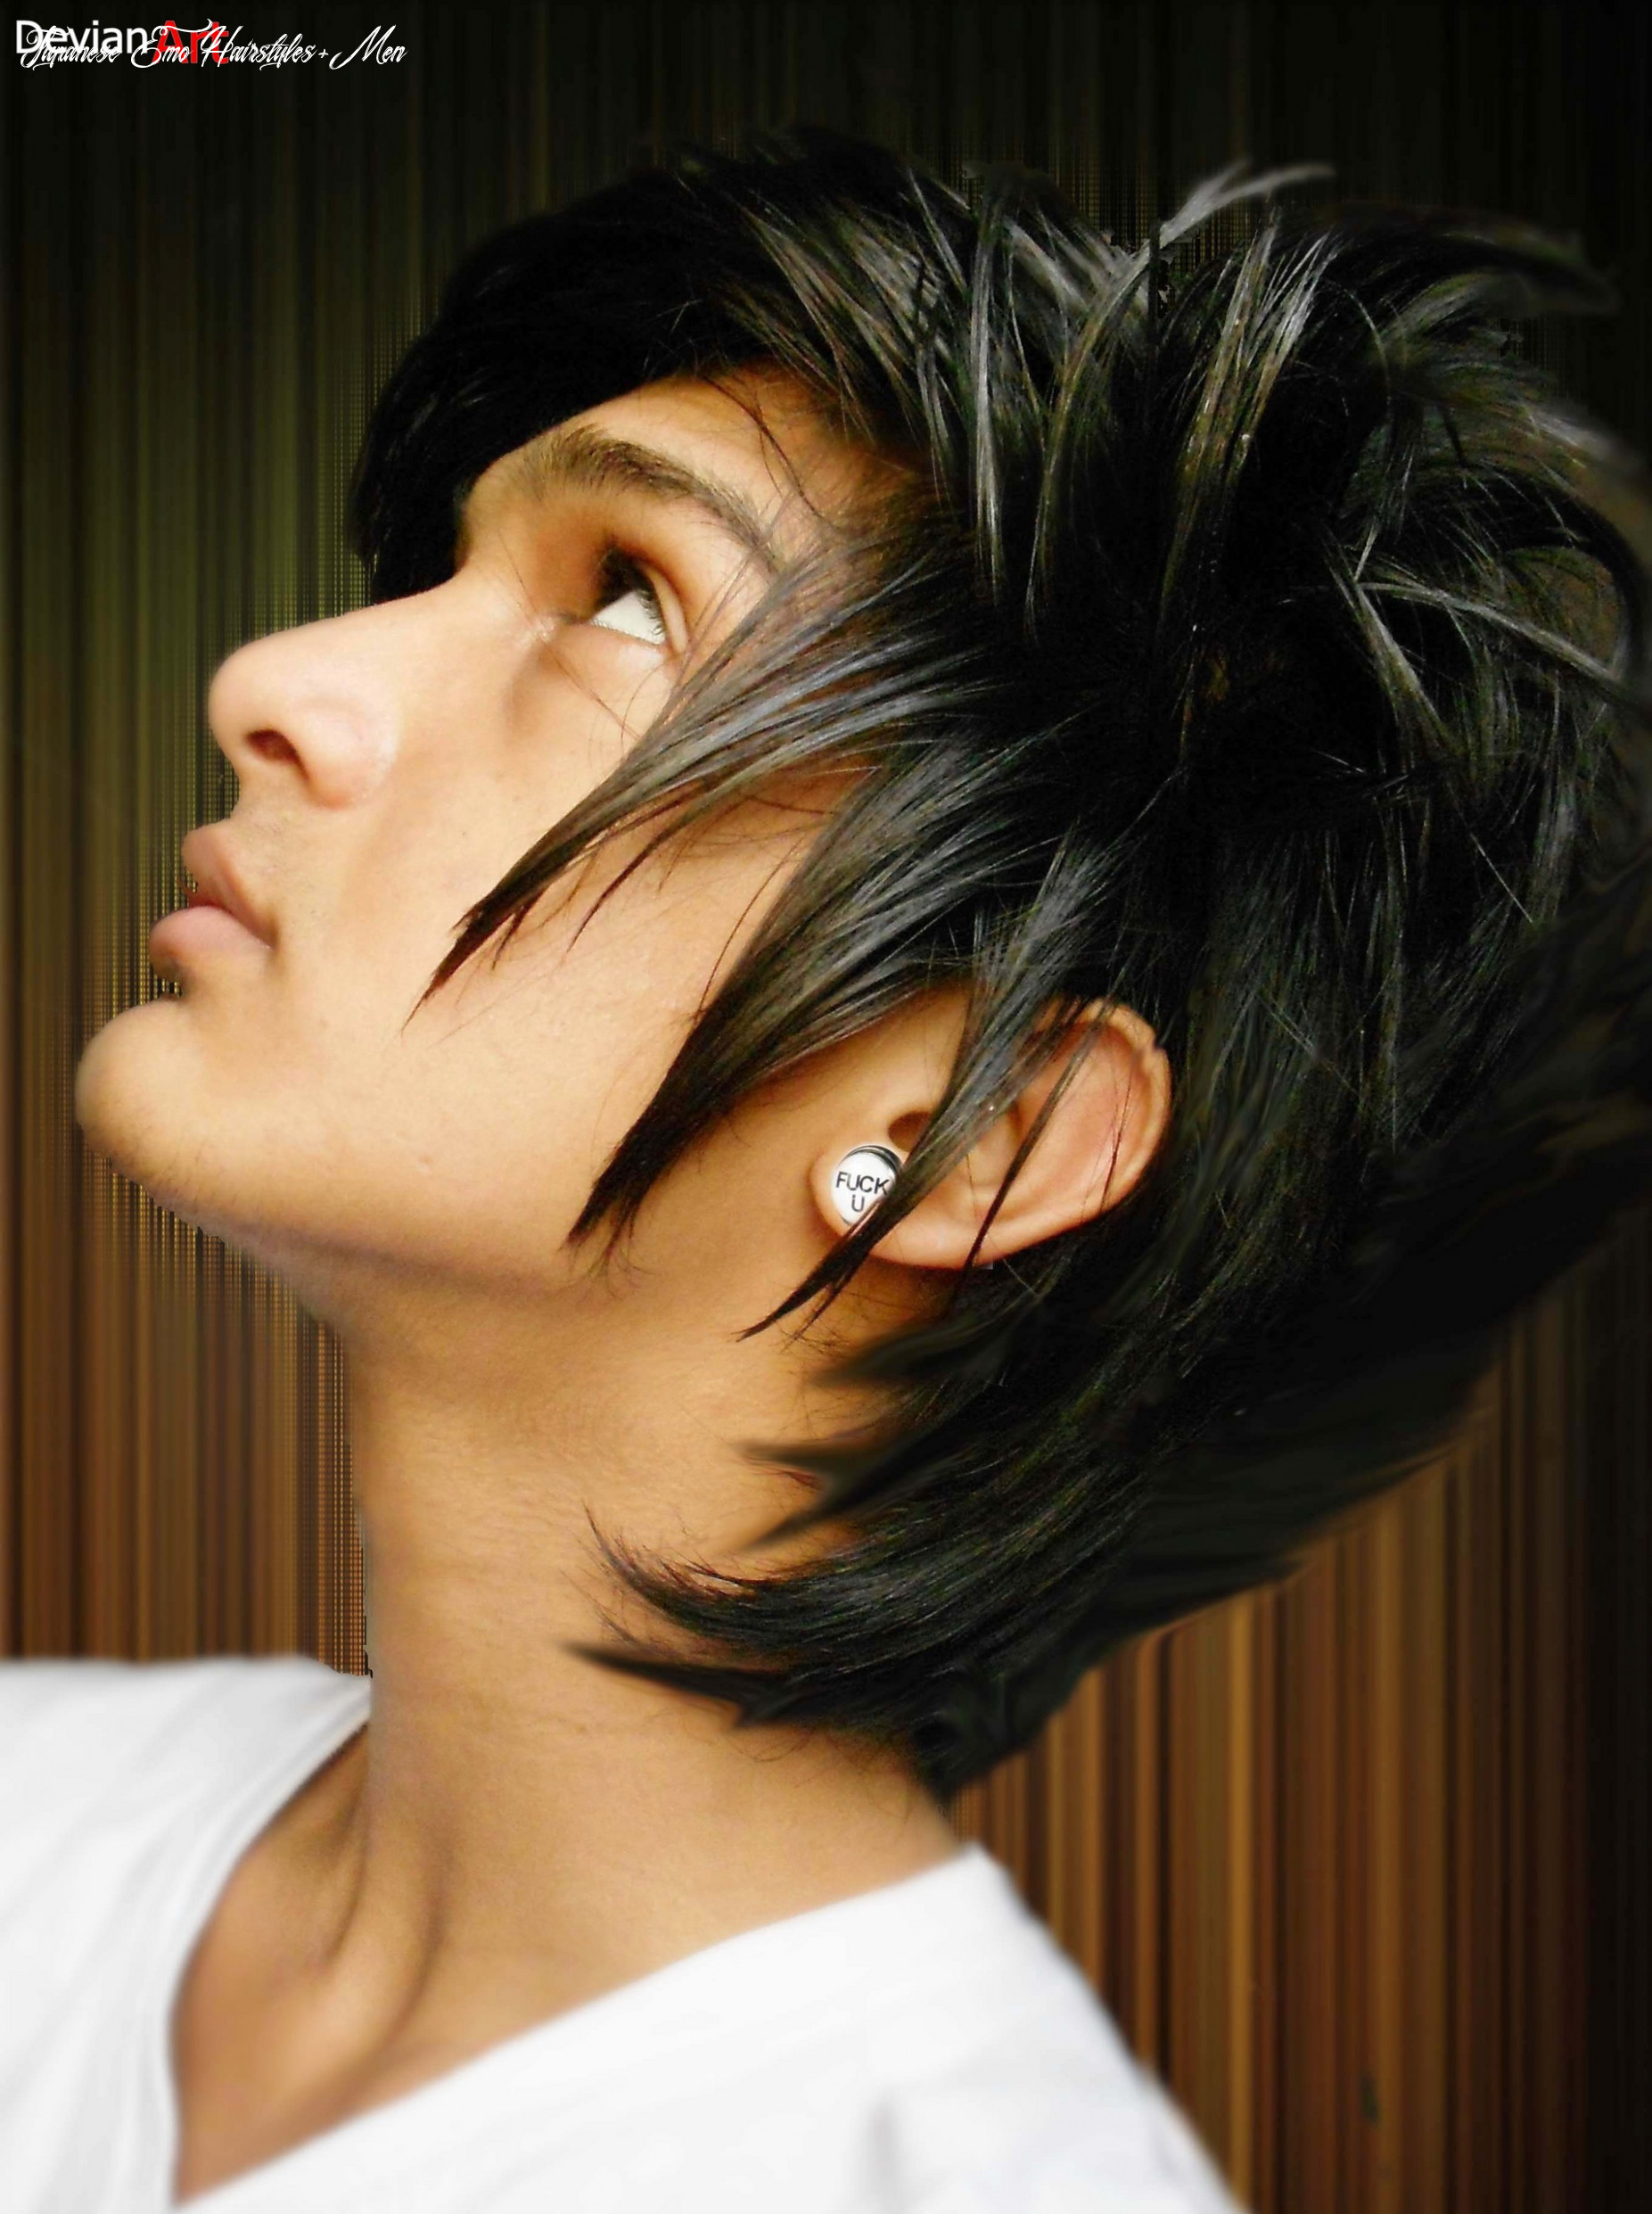 Hairstyle for men sexy new haircut for boys japanese boys foto